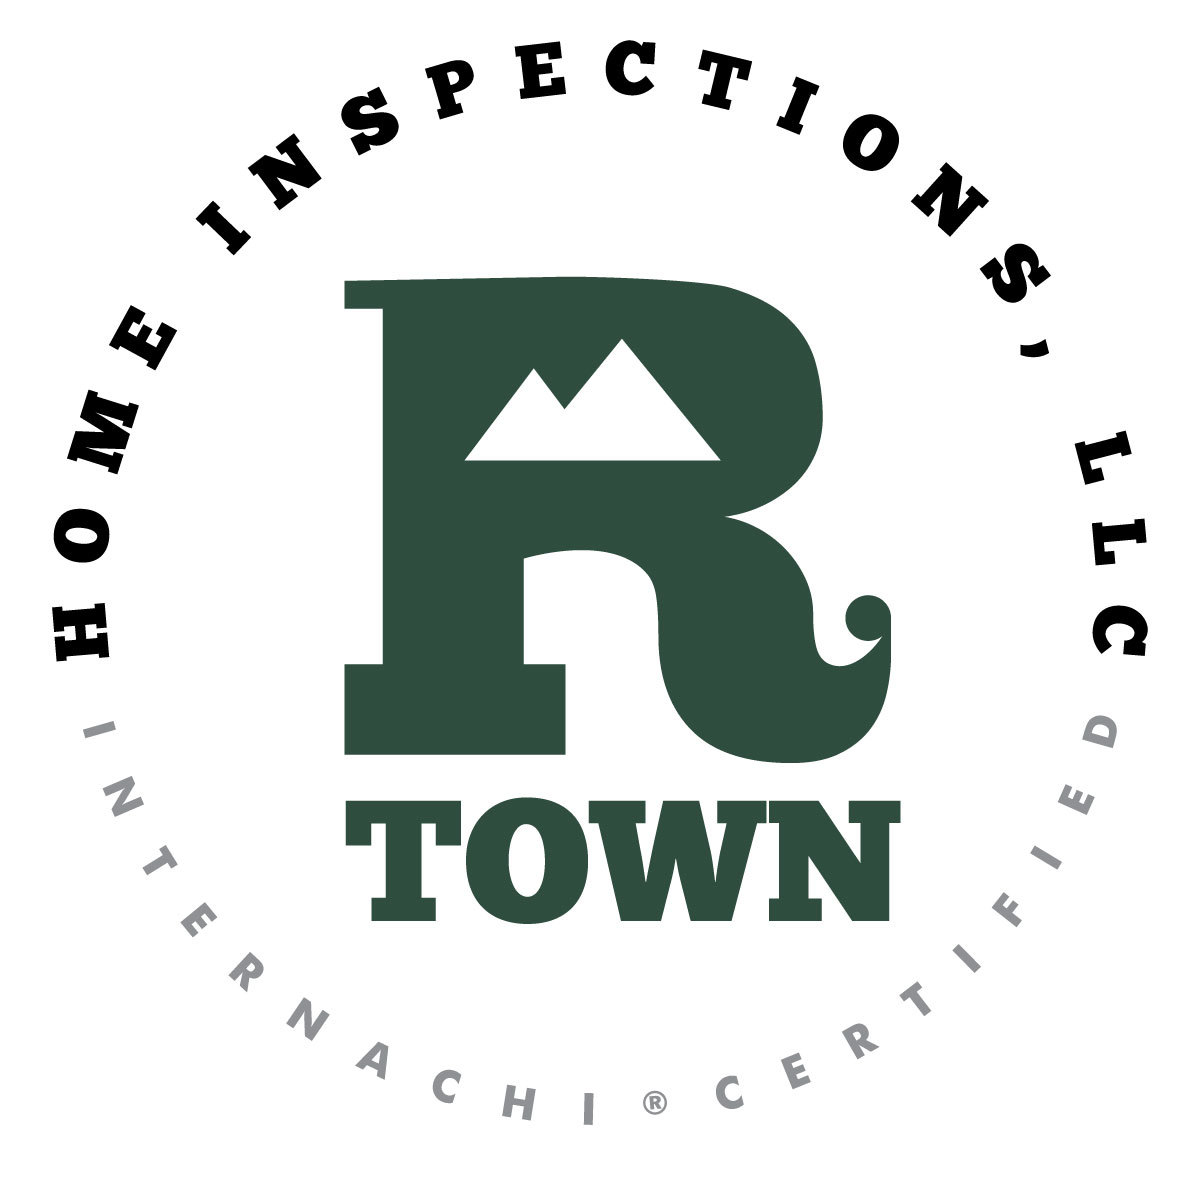 Rtown home inspector logo